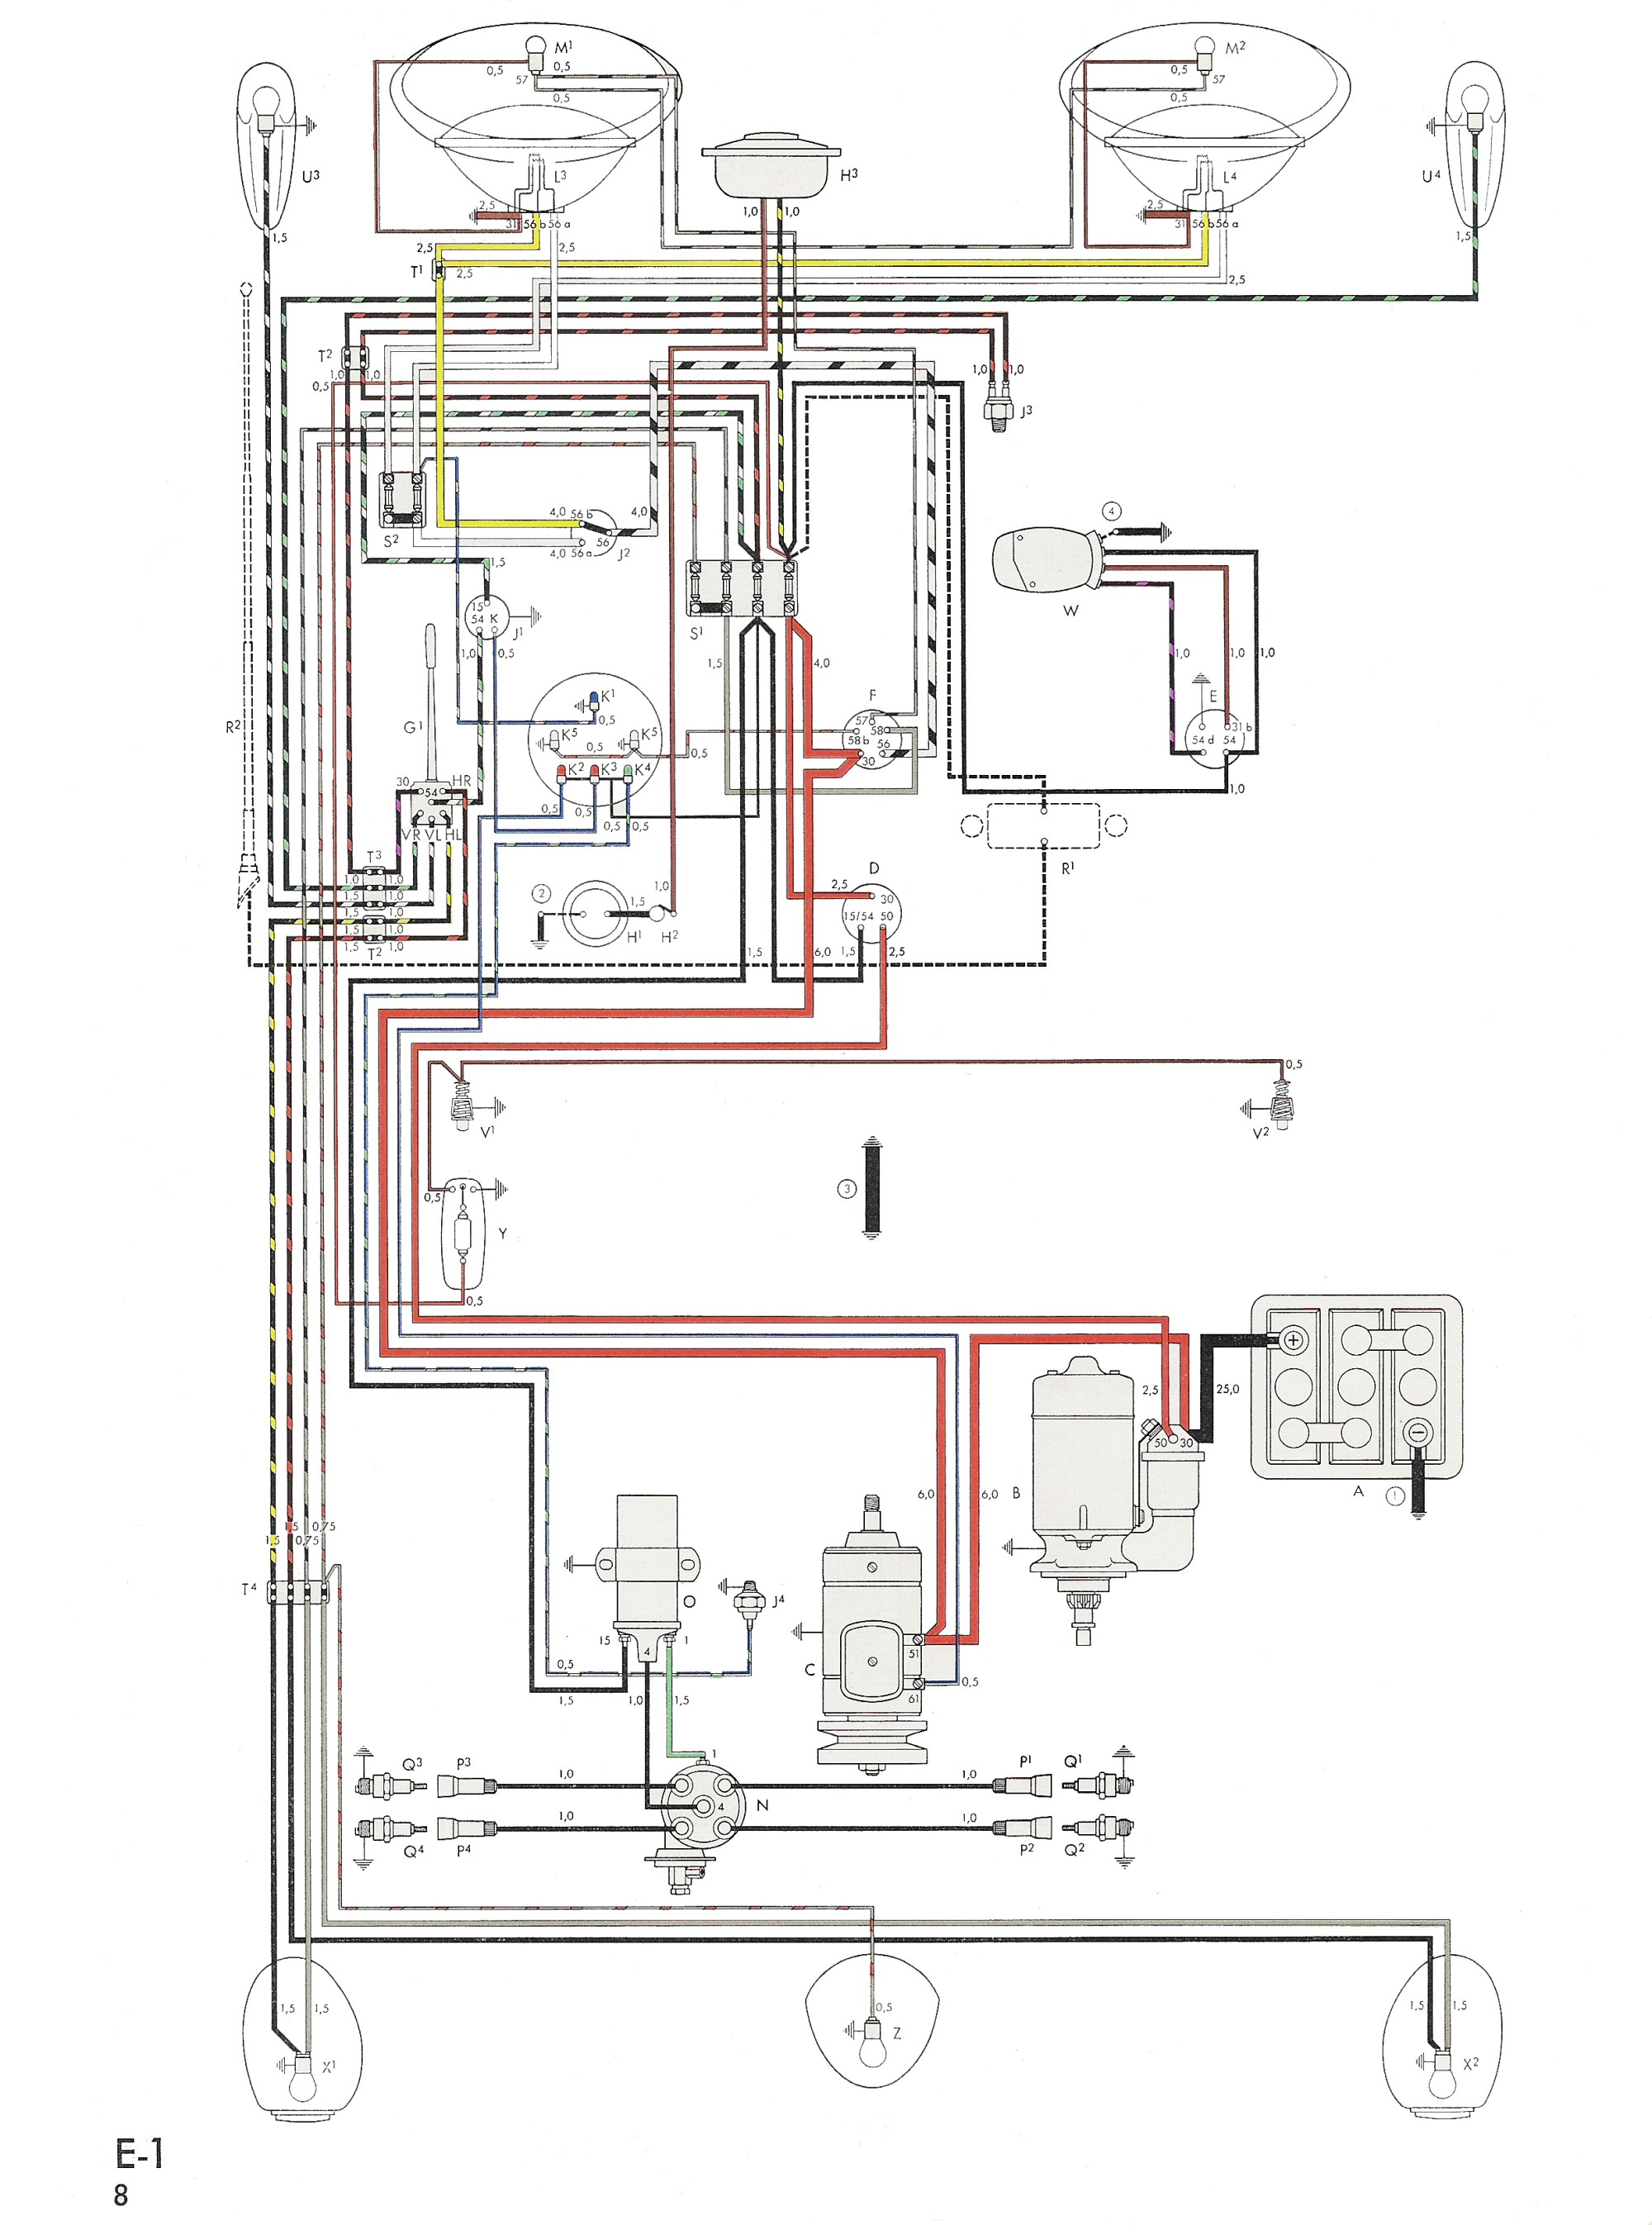 hight resolution of thesamba com type 1 wiring diagrams 70 vw beetle wiring diagram 70 vw wiring diagram